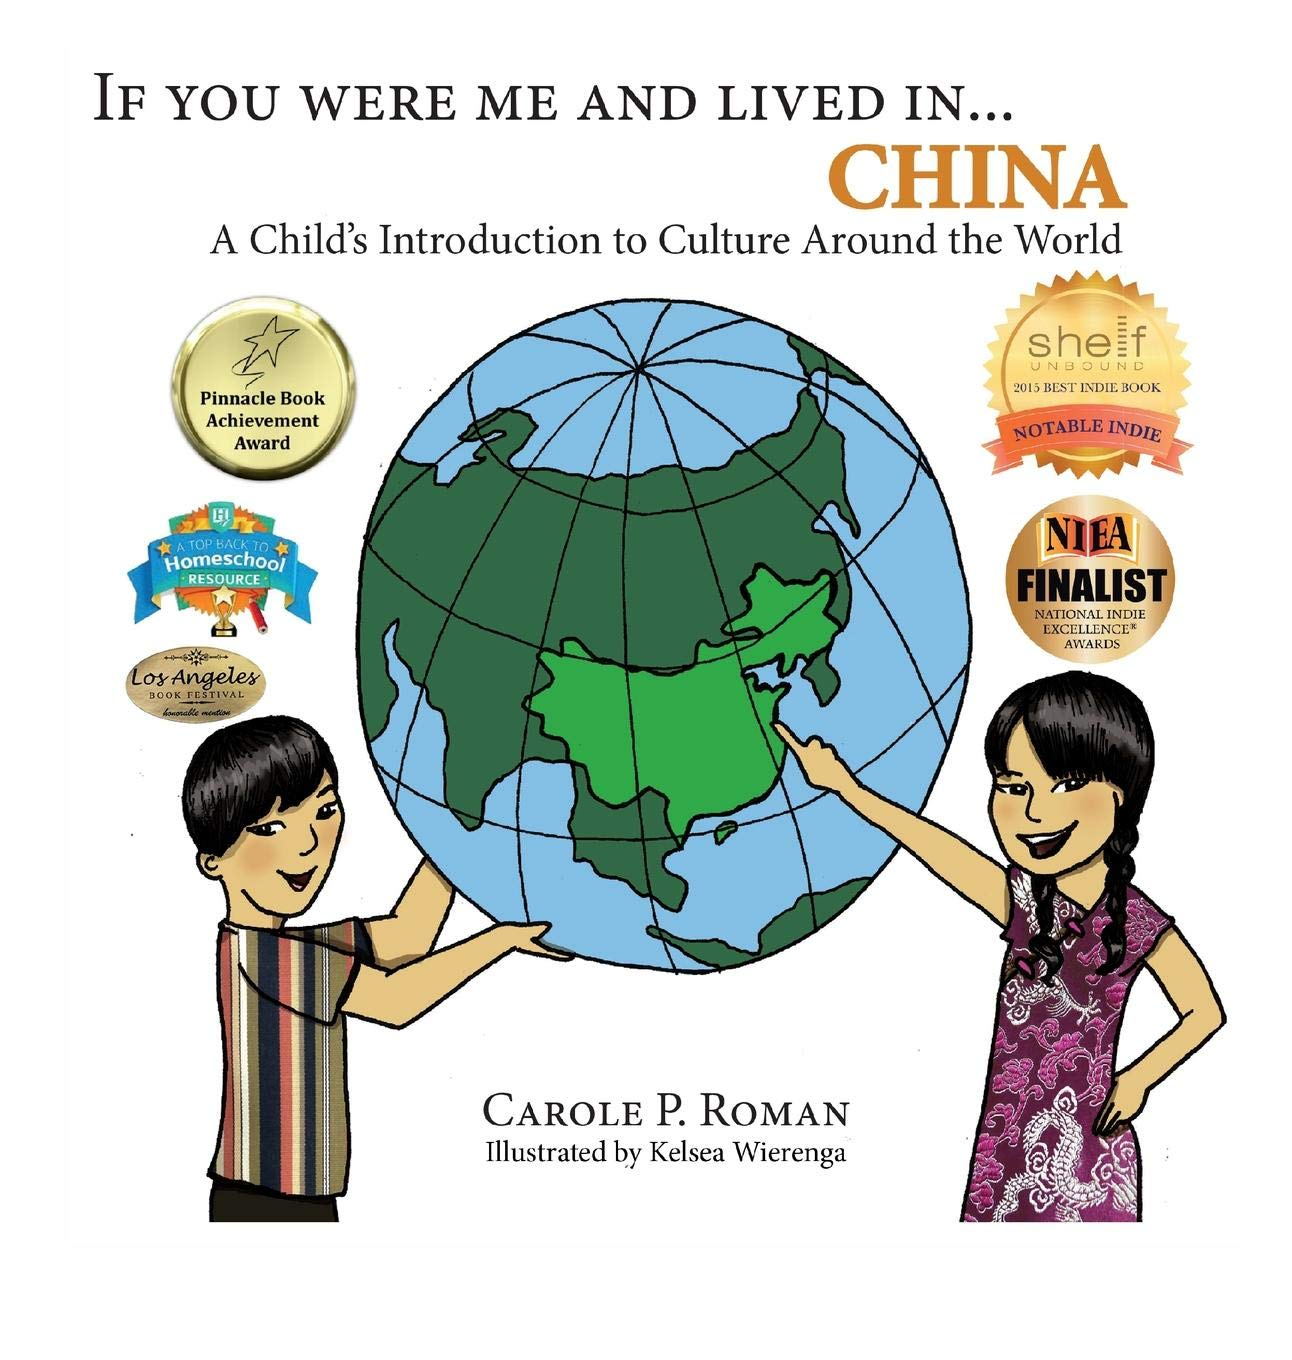 If You Were Me and Lived In...China: A Child's Introduction to Culture Around the World (If You Were Me and Lived In... Cultural) (Chinese and English Edition)